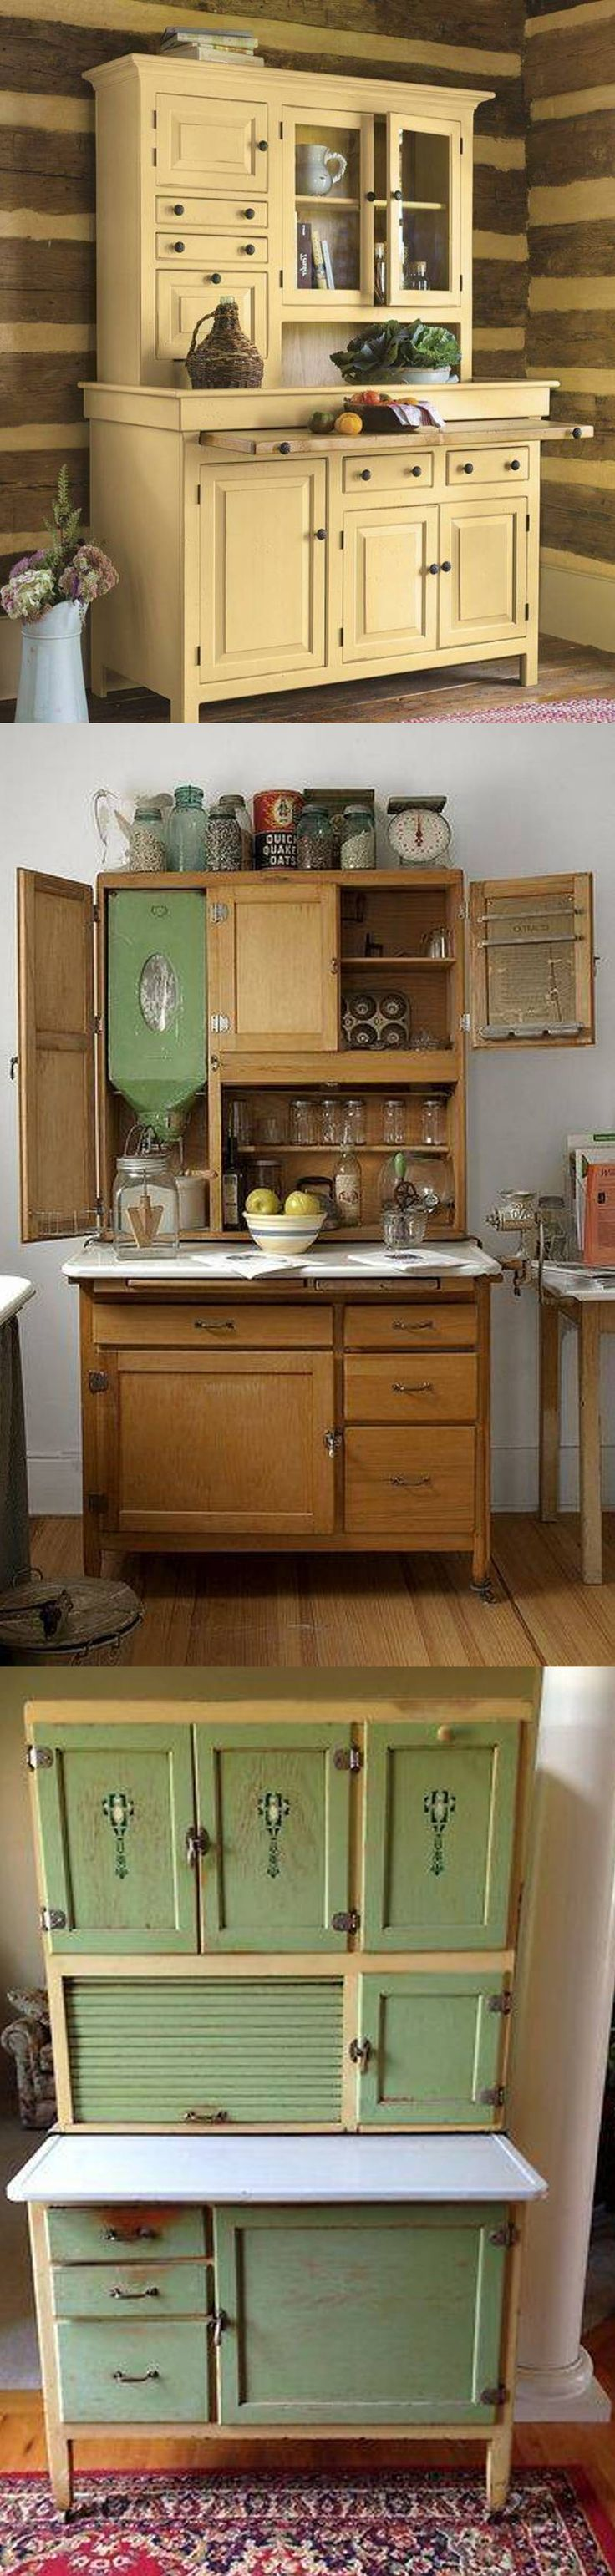 Hoosier cabinets, 1898-1940, were compact, free-standing baking centers with a pull-out porcelain counter, a large tilt-out flour bin with built-in sifter, sugar bin, salt box, spice jars, a tin lined bread drawer, canisters, and utensils drawers. Some had a rack for pots and pans and racks on the insides of the top cabinet doors to display measurement charts or recipe cards. Most had a roll-down tambour door to hide away clutter. Most were made of oak. Some had legs, some were on wheels.